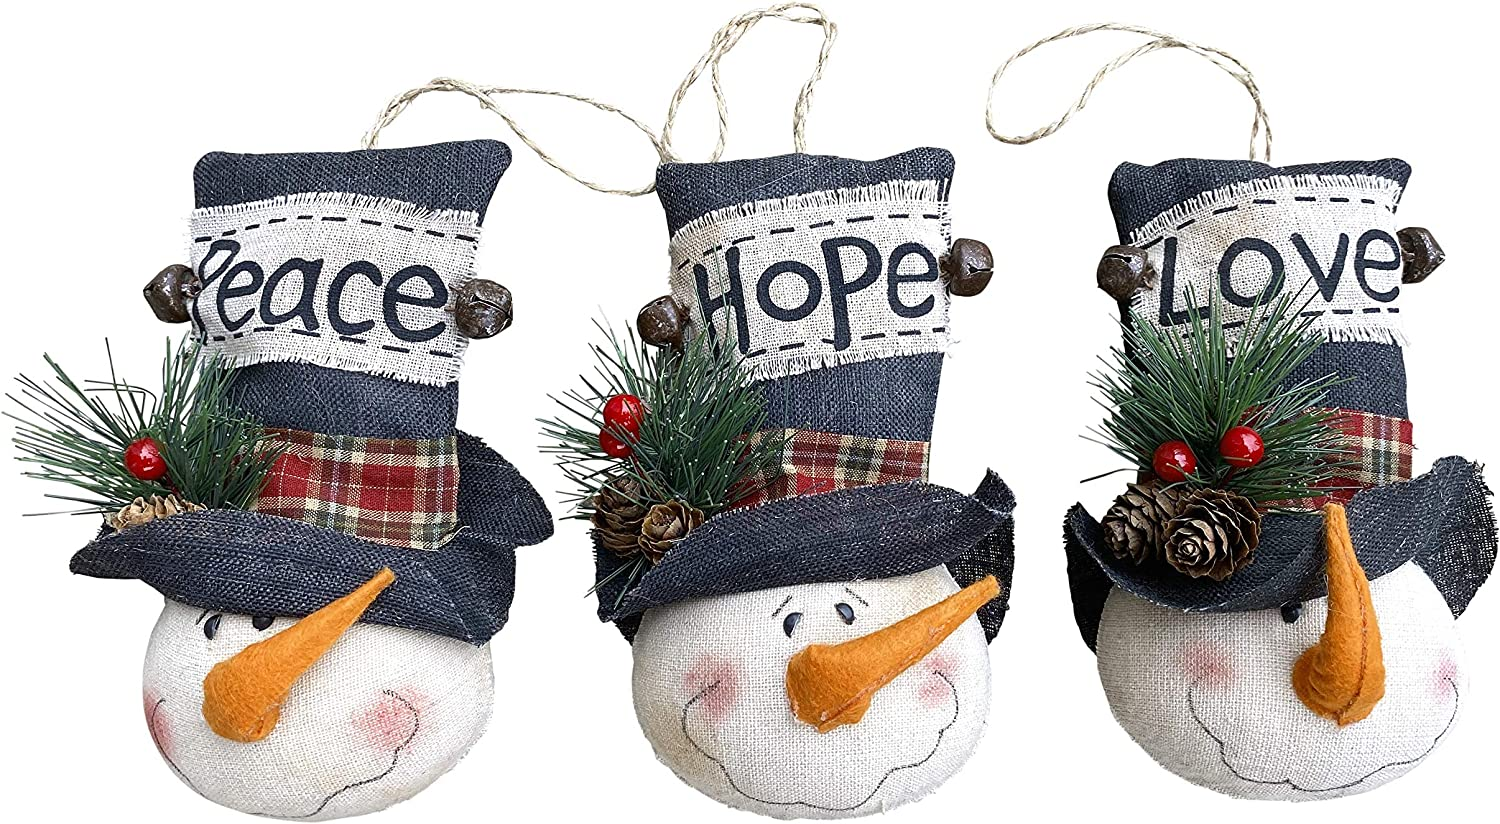 Clovers Garden Christmas Snowman Ornaments (Set of 3) Rustic Holiday Tree Decorations - Decorative Farmhouse Christmas Hanging Snowmen with Hope, Love, Peace Sayings Traditional Vintage Mantle Decor